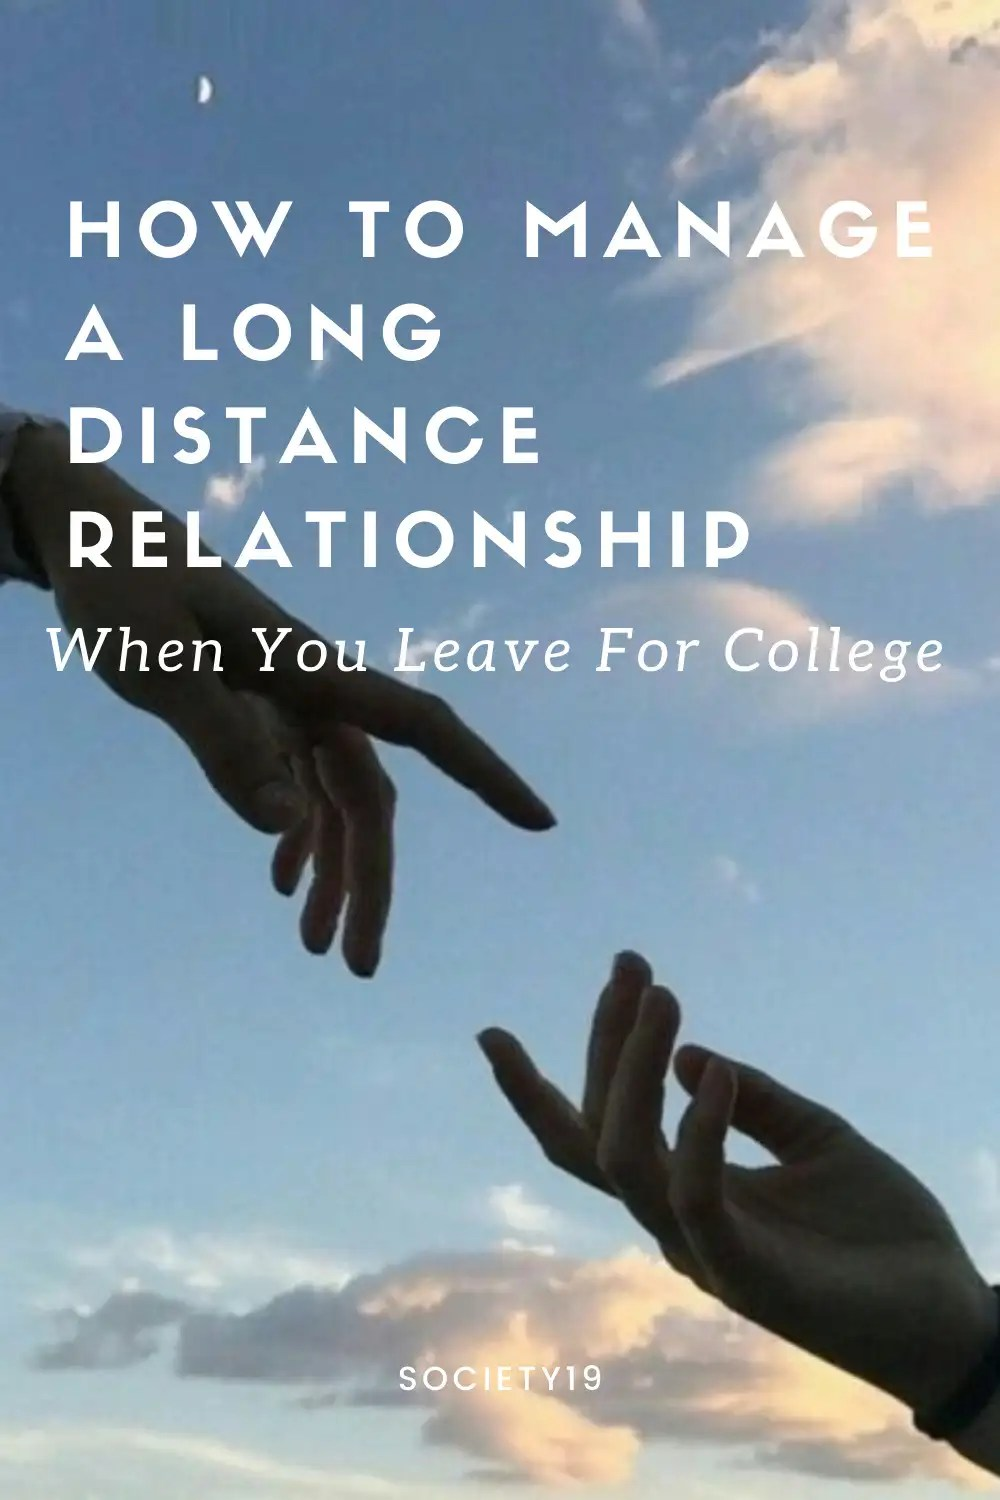 How To Manage A Long Distance Relationship When You Leave For College